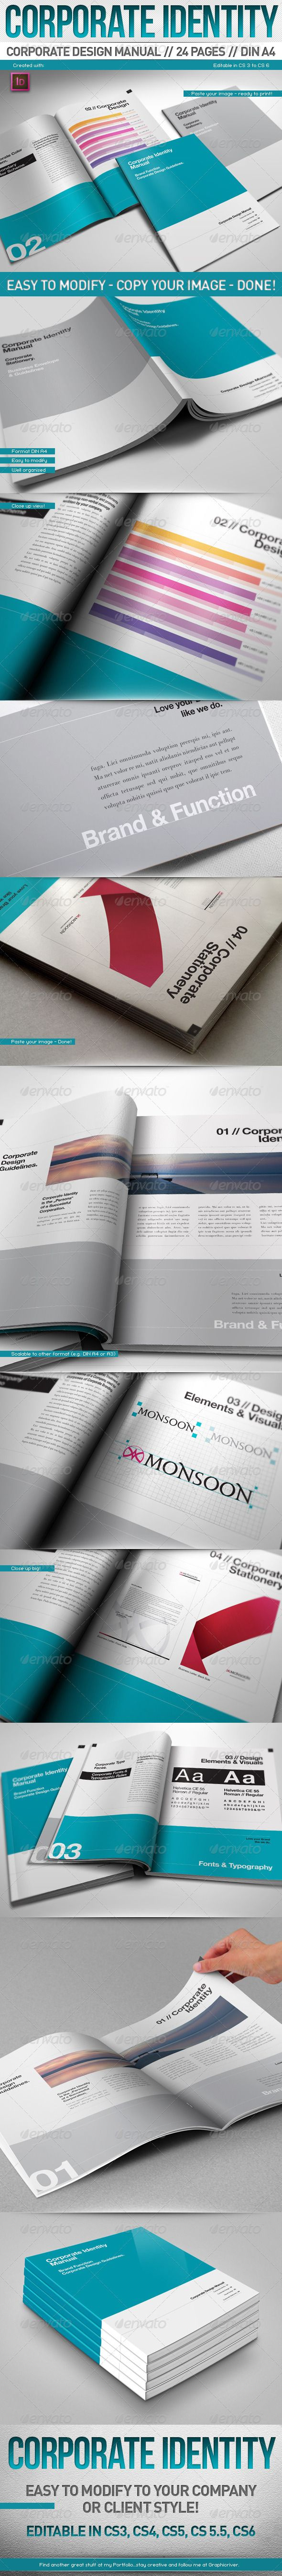 Corporate Design Manual Guide DIN A4 // 24 Pages